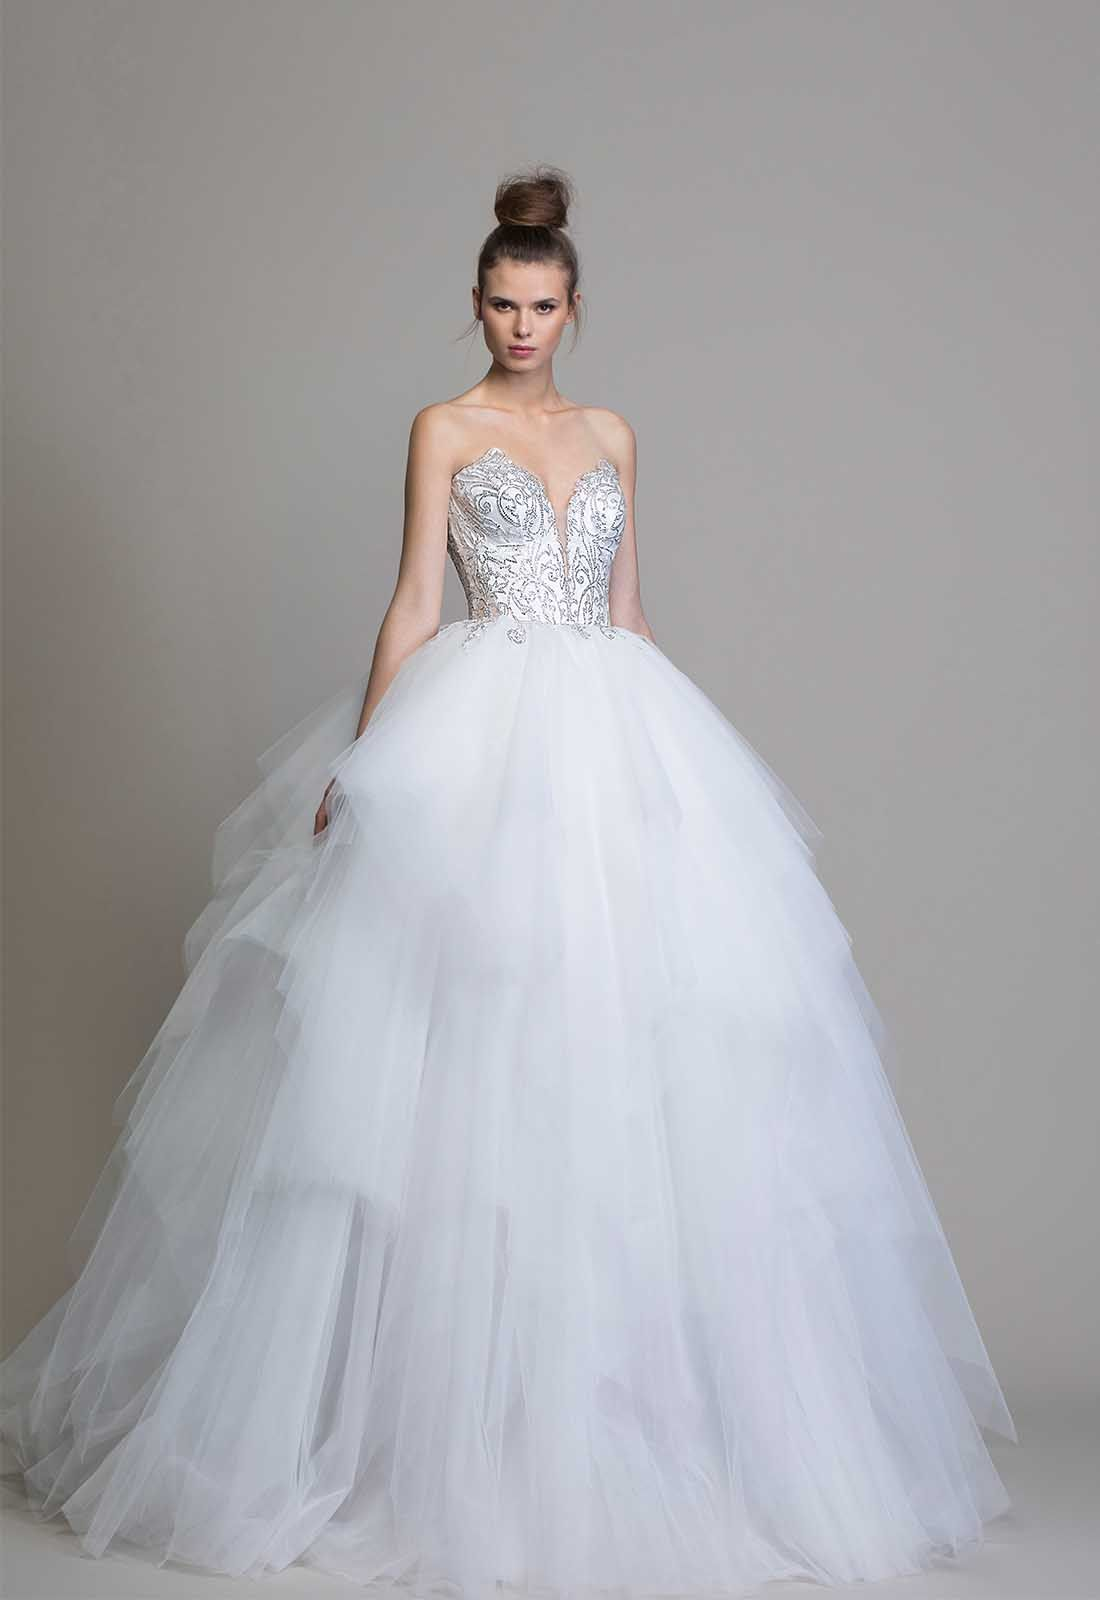 Pnina Tornai 2020 Lovebypninatornai Weddingown Weddingdress Bridetobe Pninato Pnina Tornai Wedding Dress Pnina Tornai Ball Gown Ball Gown Wedding Dress